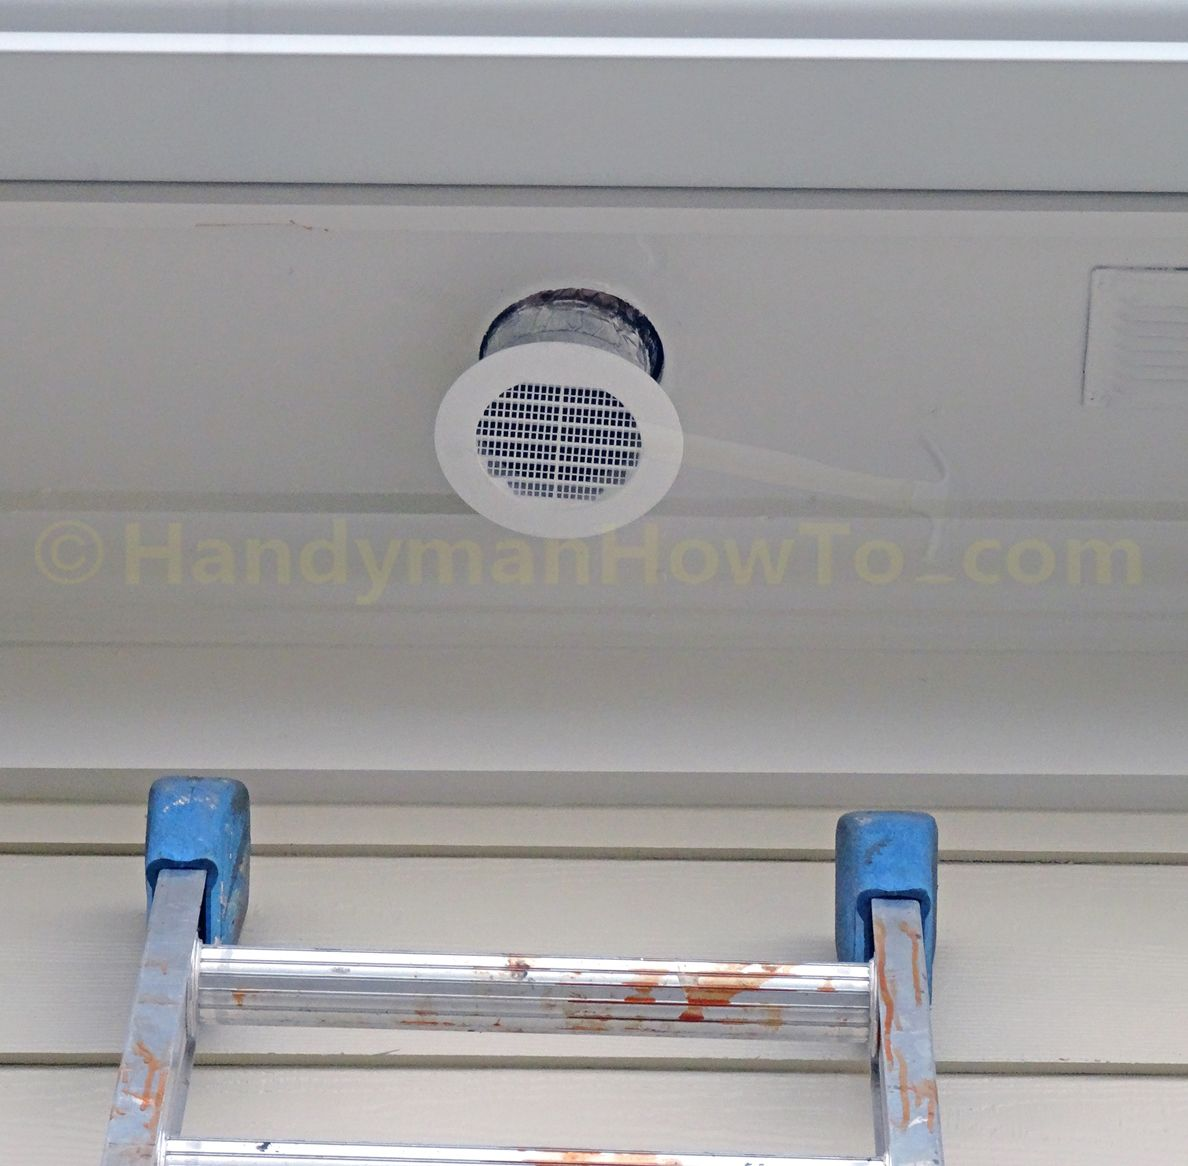 How To Install A Soffit Vent And Ductwork For A Bathroom Vent Fan - Who can install a bathroom fan